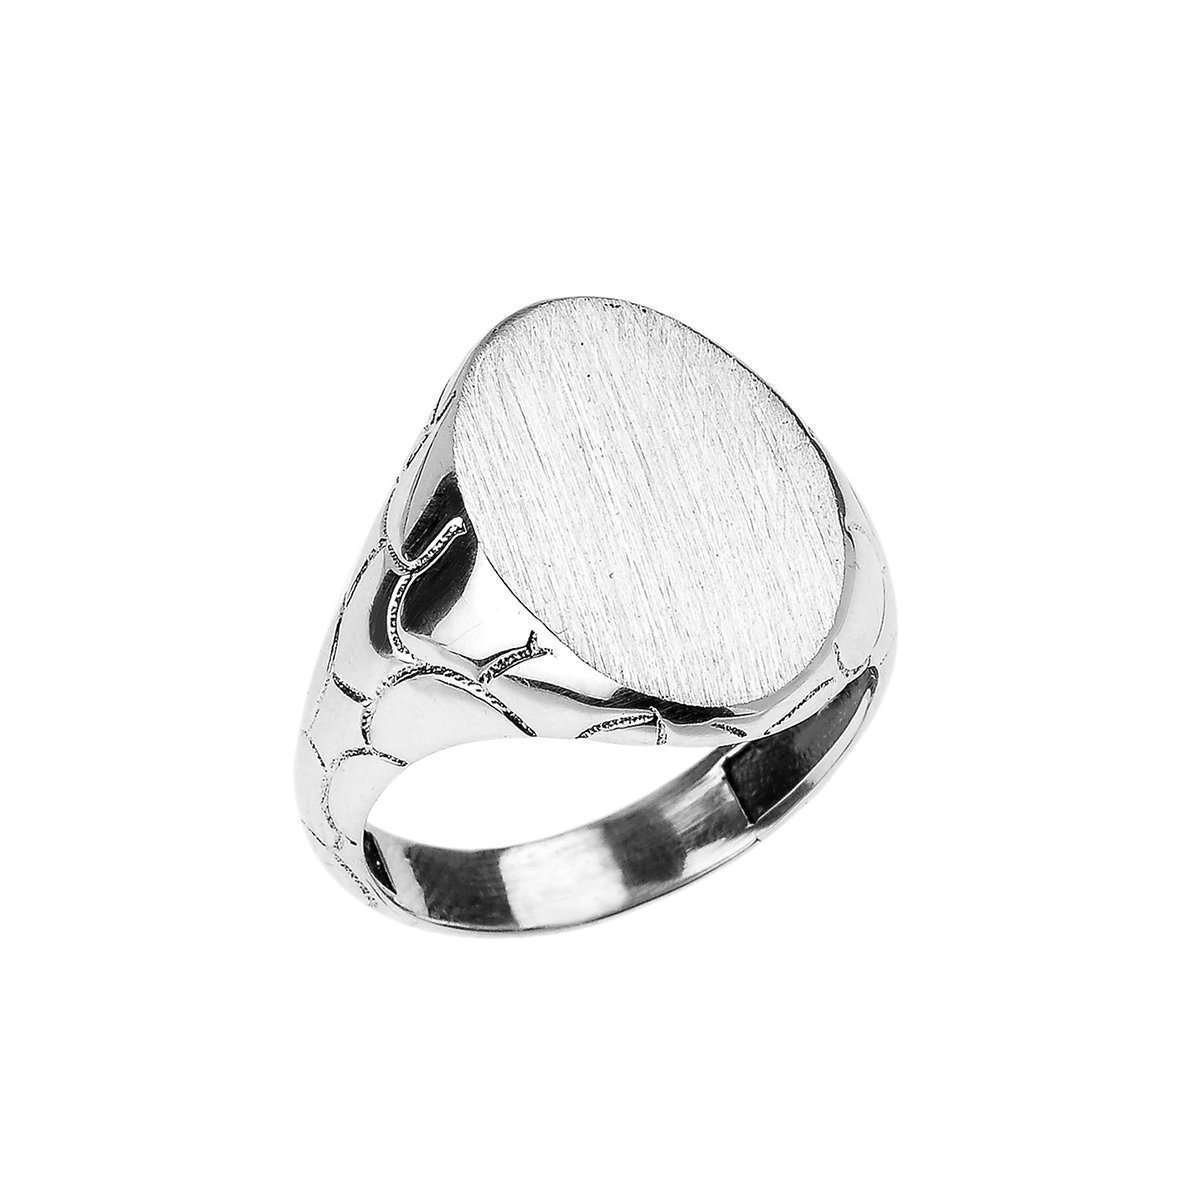 Oval Signet Ring In Sterling Silver - 3.6mm